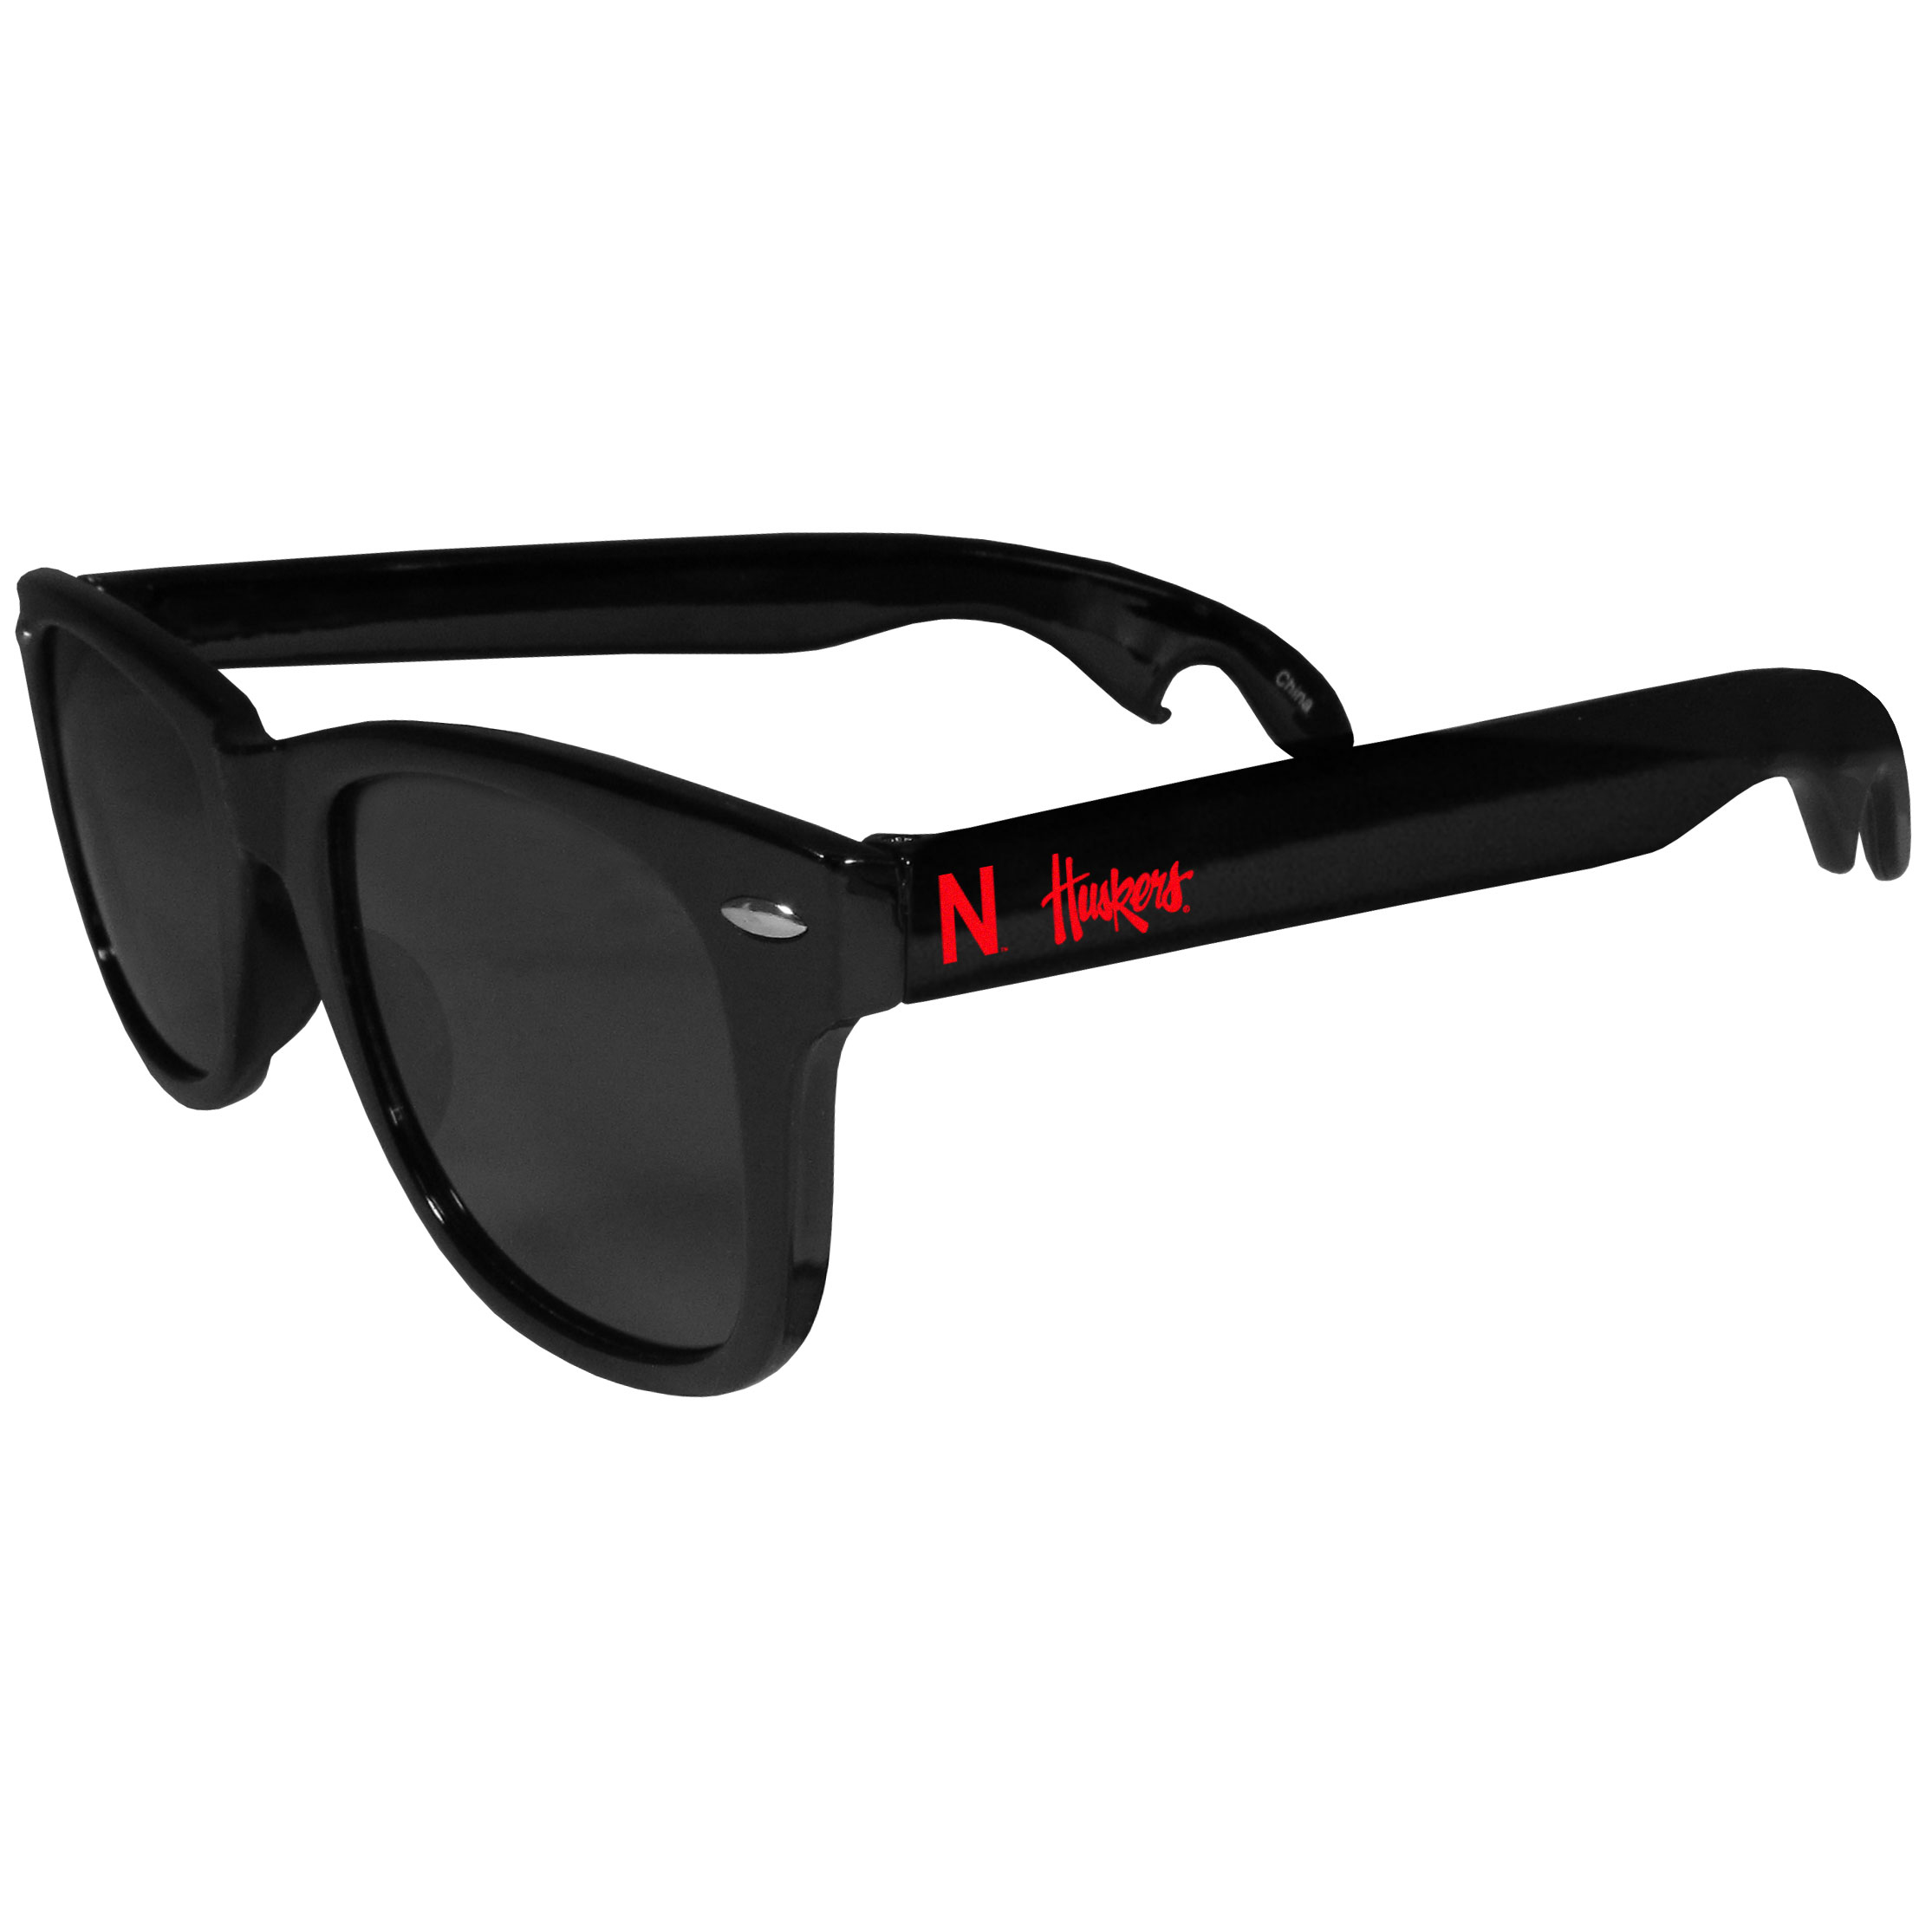 Nebraska Cornhuskers Beachfarer Bottle Opener Sunglasses - Seriously, these sunglasses open bottles! Keep the party going with these amazing Nebraska Cornhuskers bottle opener sunglasses. The stylish retro frames feature team designs on the arms and functional bottle openers on the end of the arms. Whether you are at the beach or having a backyard BBQ on game day, these shades will keep your eyes protected with 100% UVA/UVB protection and keep you hydrated with the handy bottle opener arms.